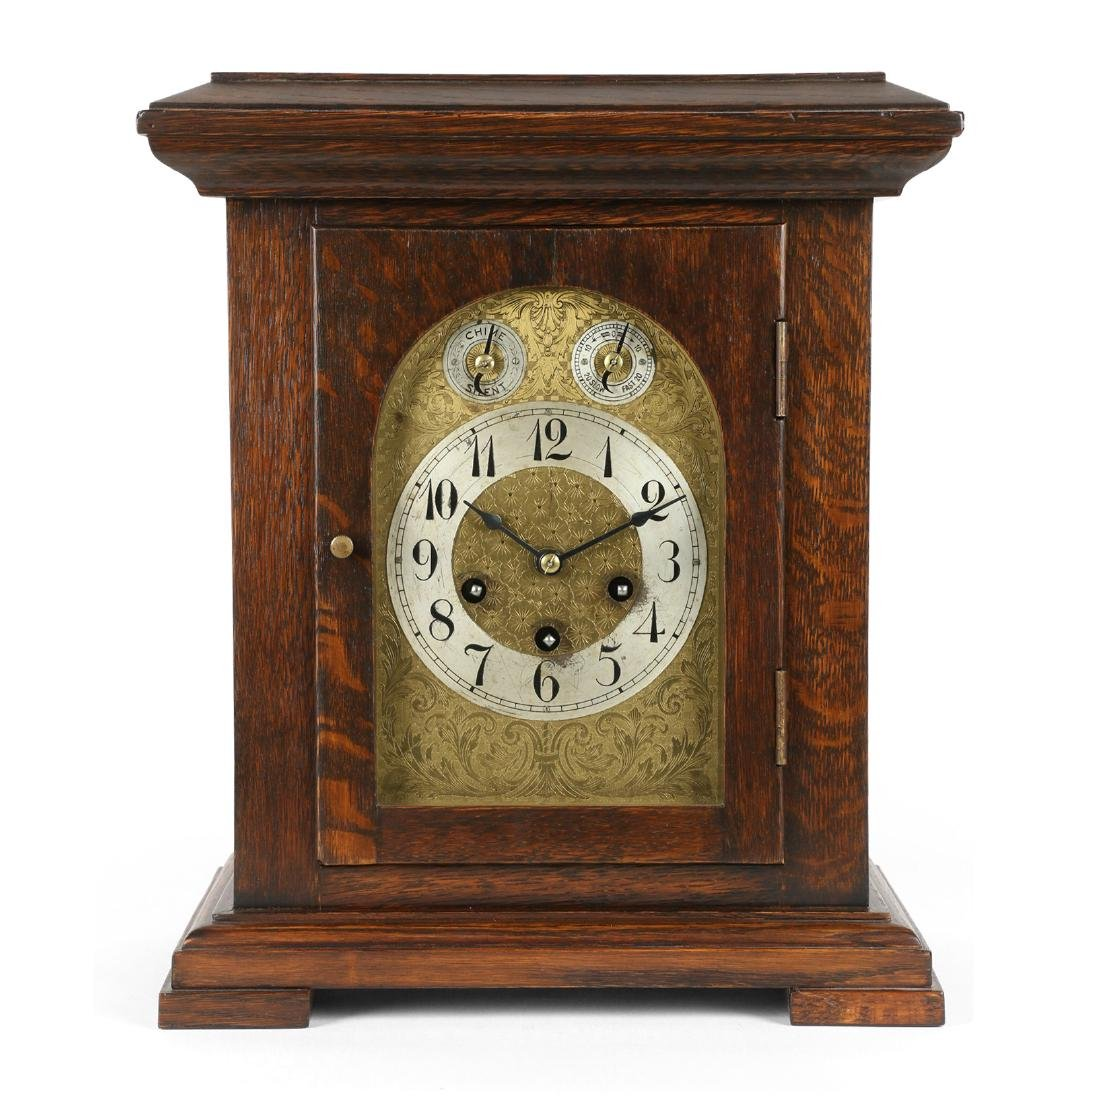 Other Antique Furniture Antique French Marquetry Mahogany Mantle Clock C.1900 By Scientific Process Antique Furniture